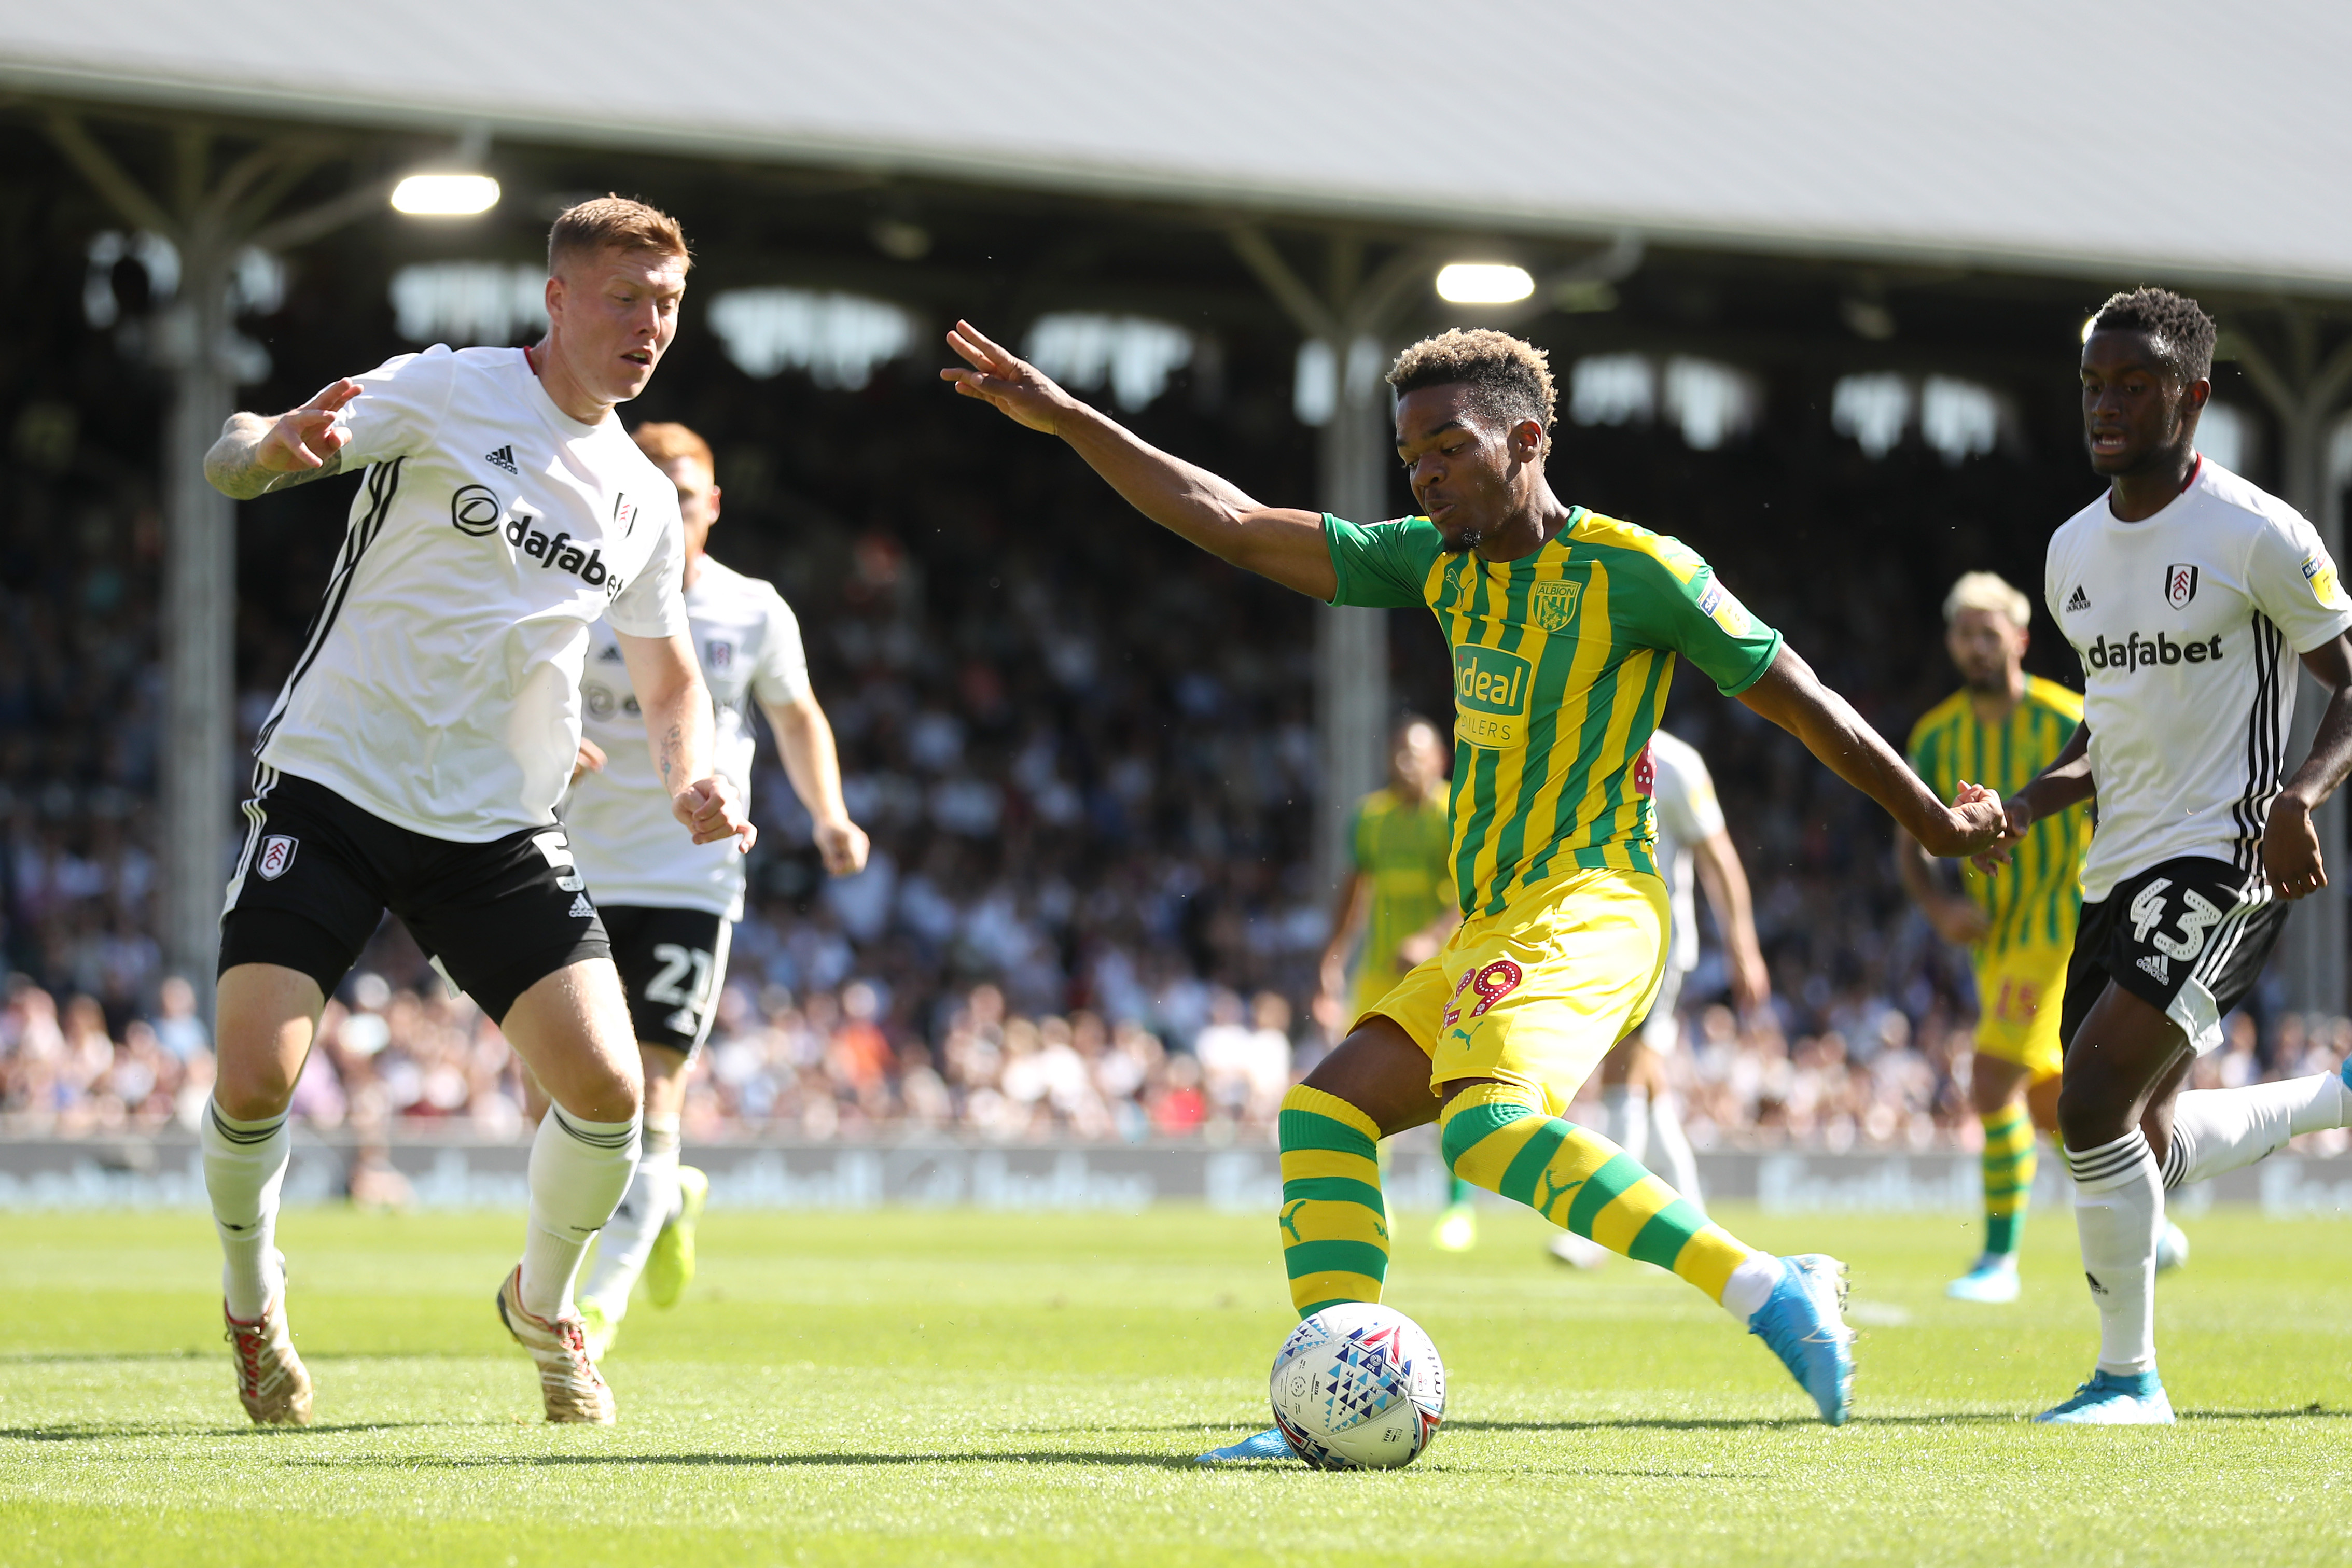 Fulham v West Bromwich Albion - Sky Bet Championship